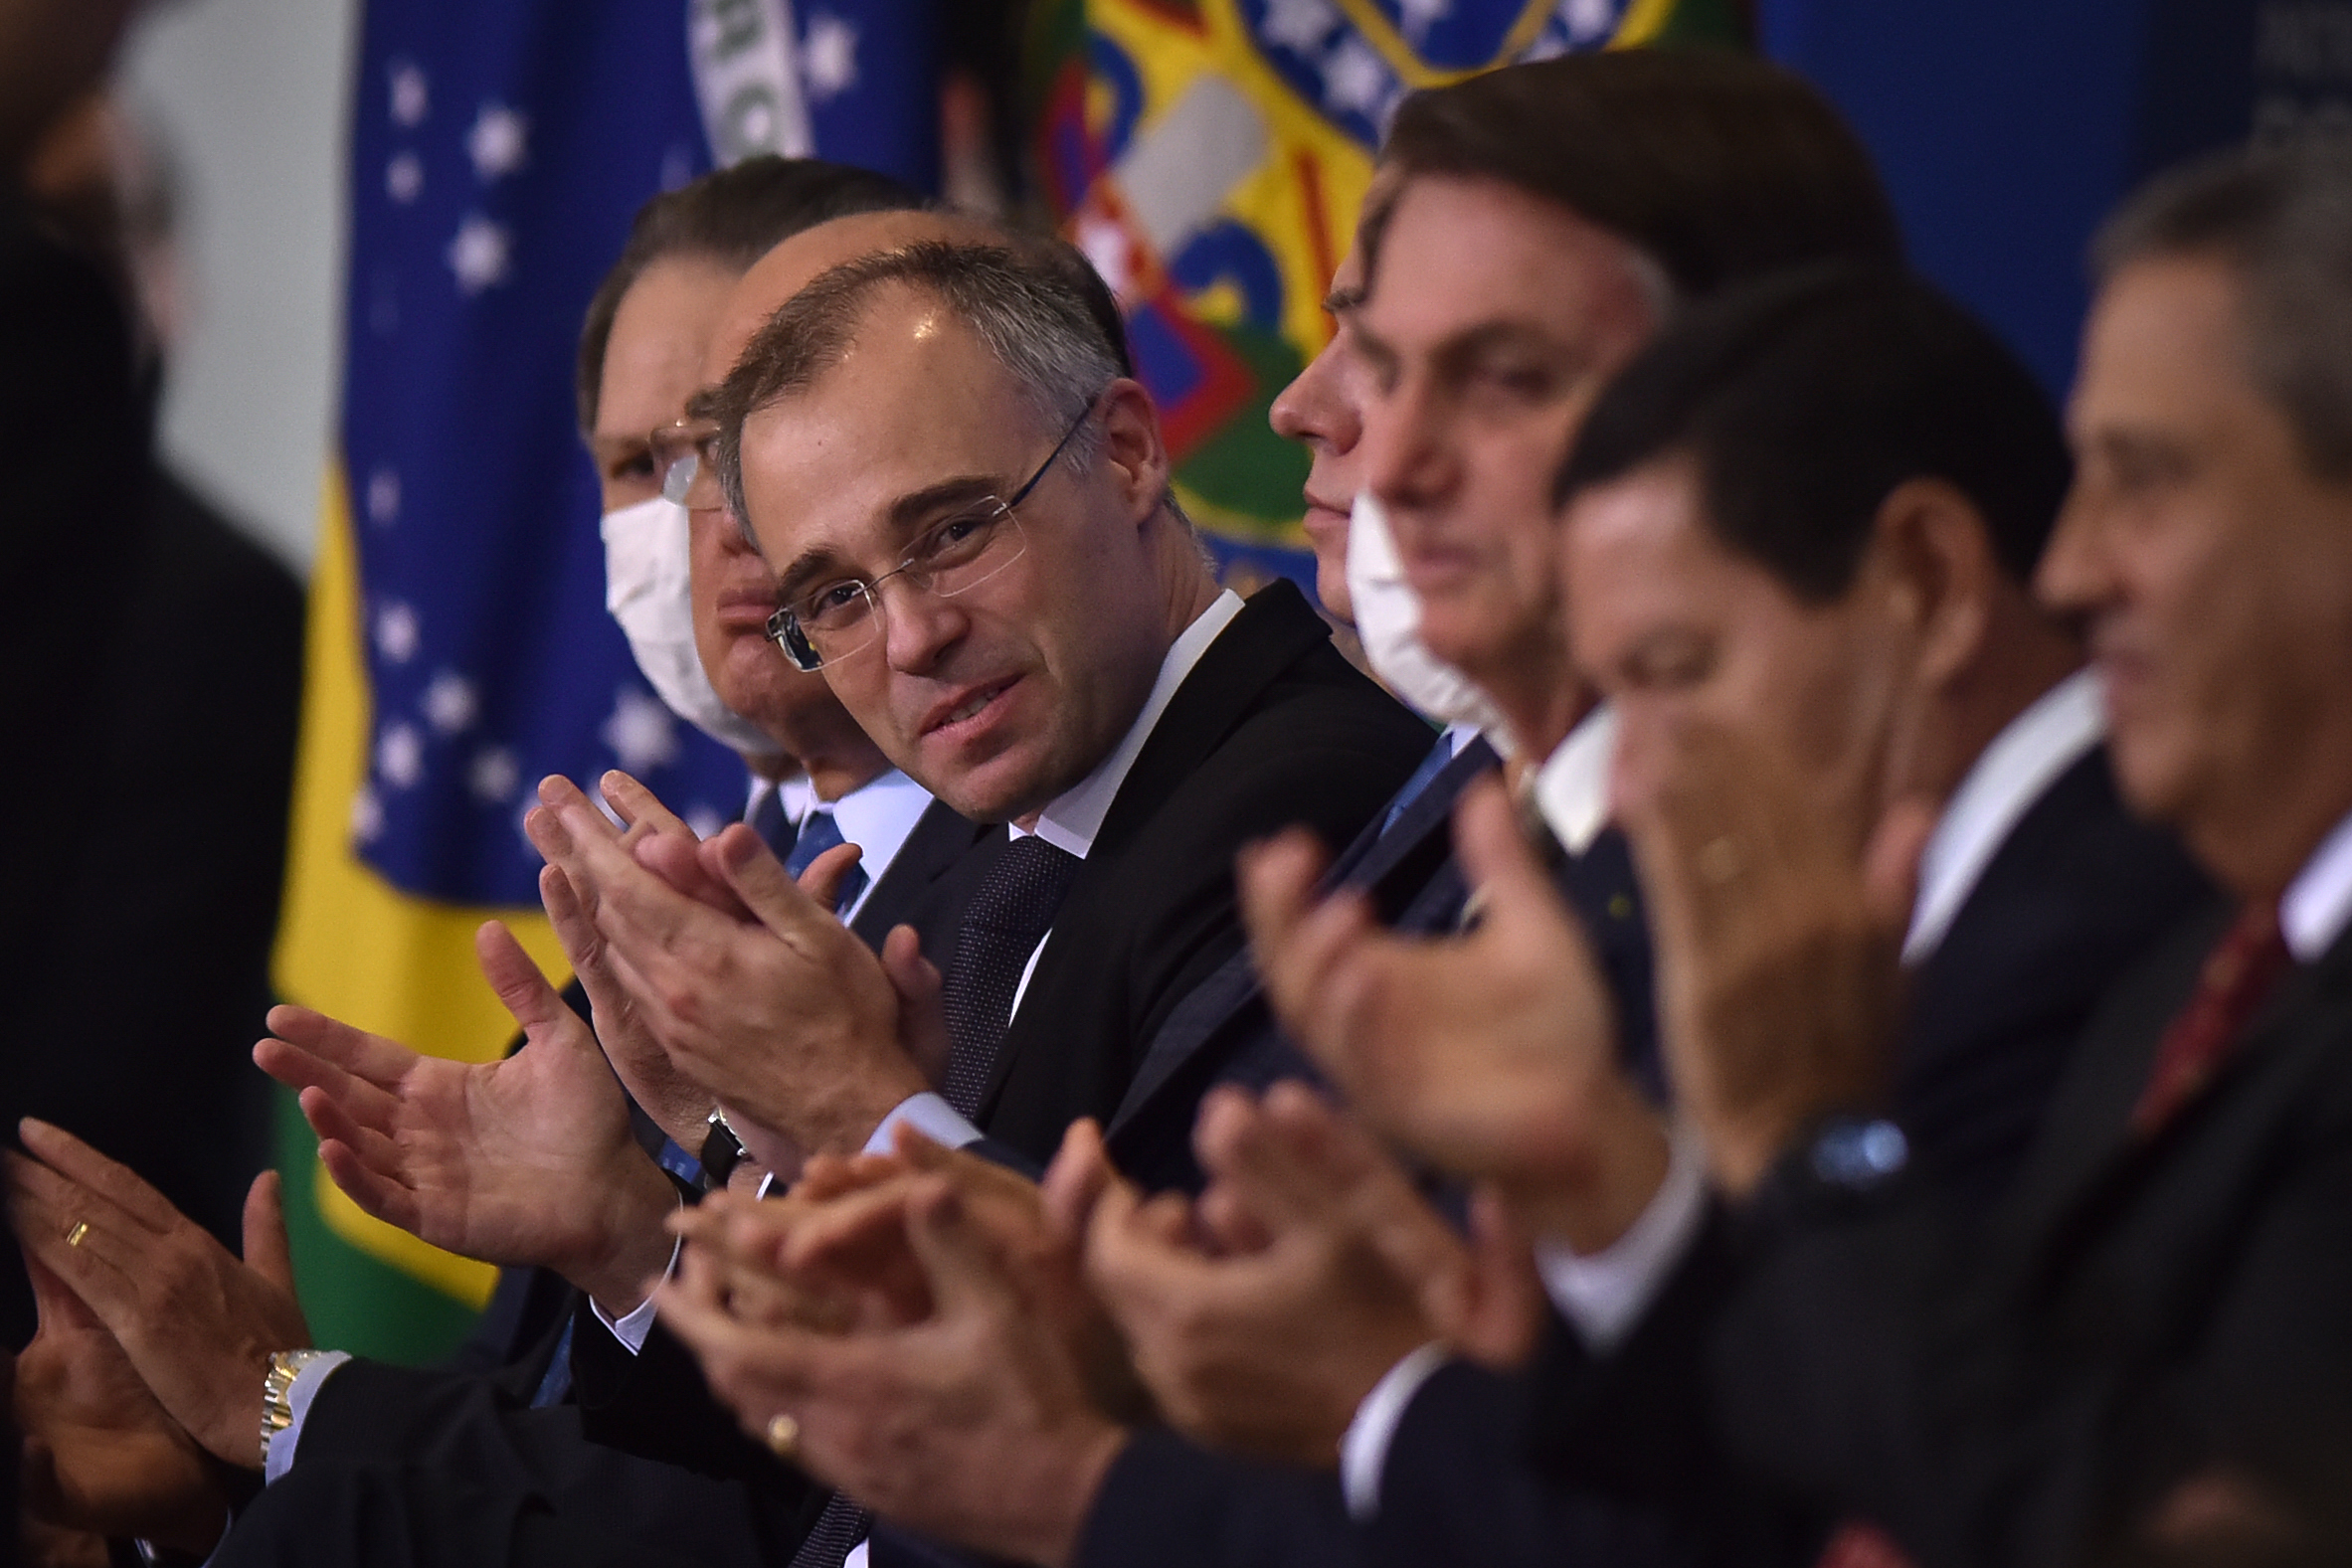 Andre Mendonca, Brazil's new minister of justice, center, applauds during an inauguration ceremony with Jair Bolsonaro, Brazil's president, at Planalto Palace in Brasilia, Brazil, on Wednesday, April 29, 2020. Medonca is taking over after Sergio Moro quit the post following Bolsonaro's firing of the federal police chief. Photographer: Andres Borges/Bloomberg via Getty Images